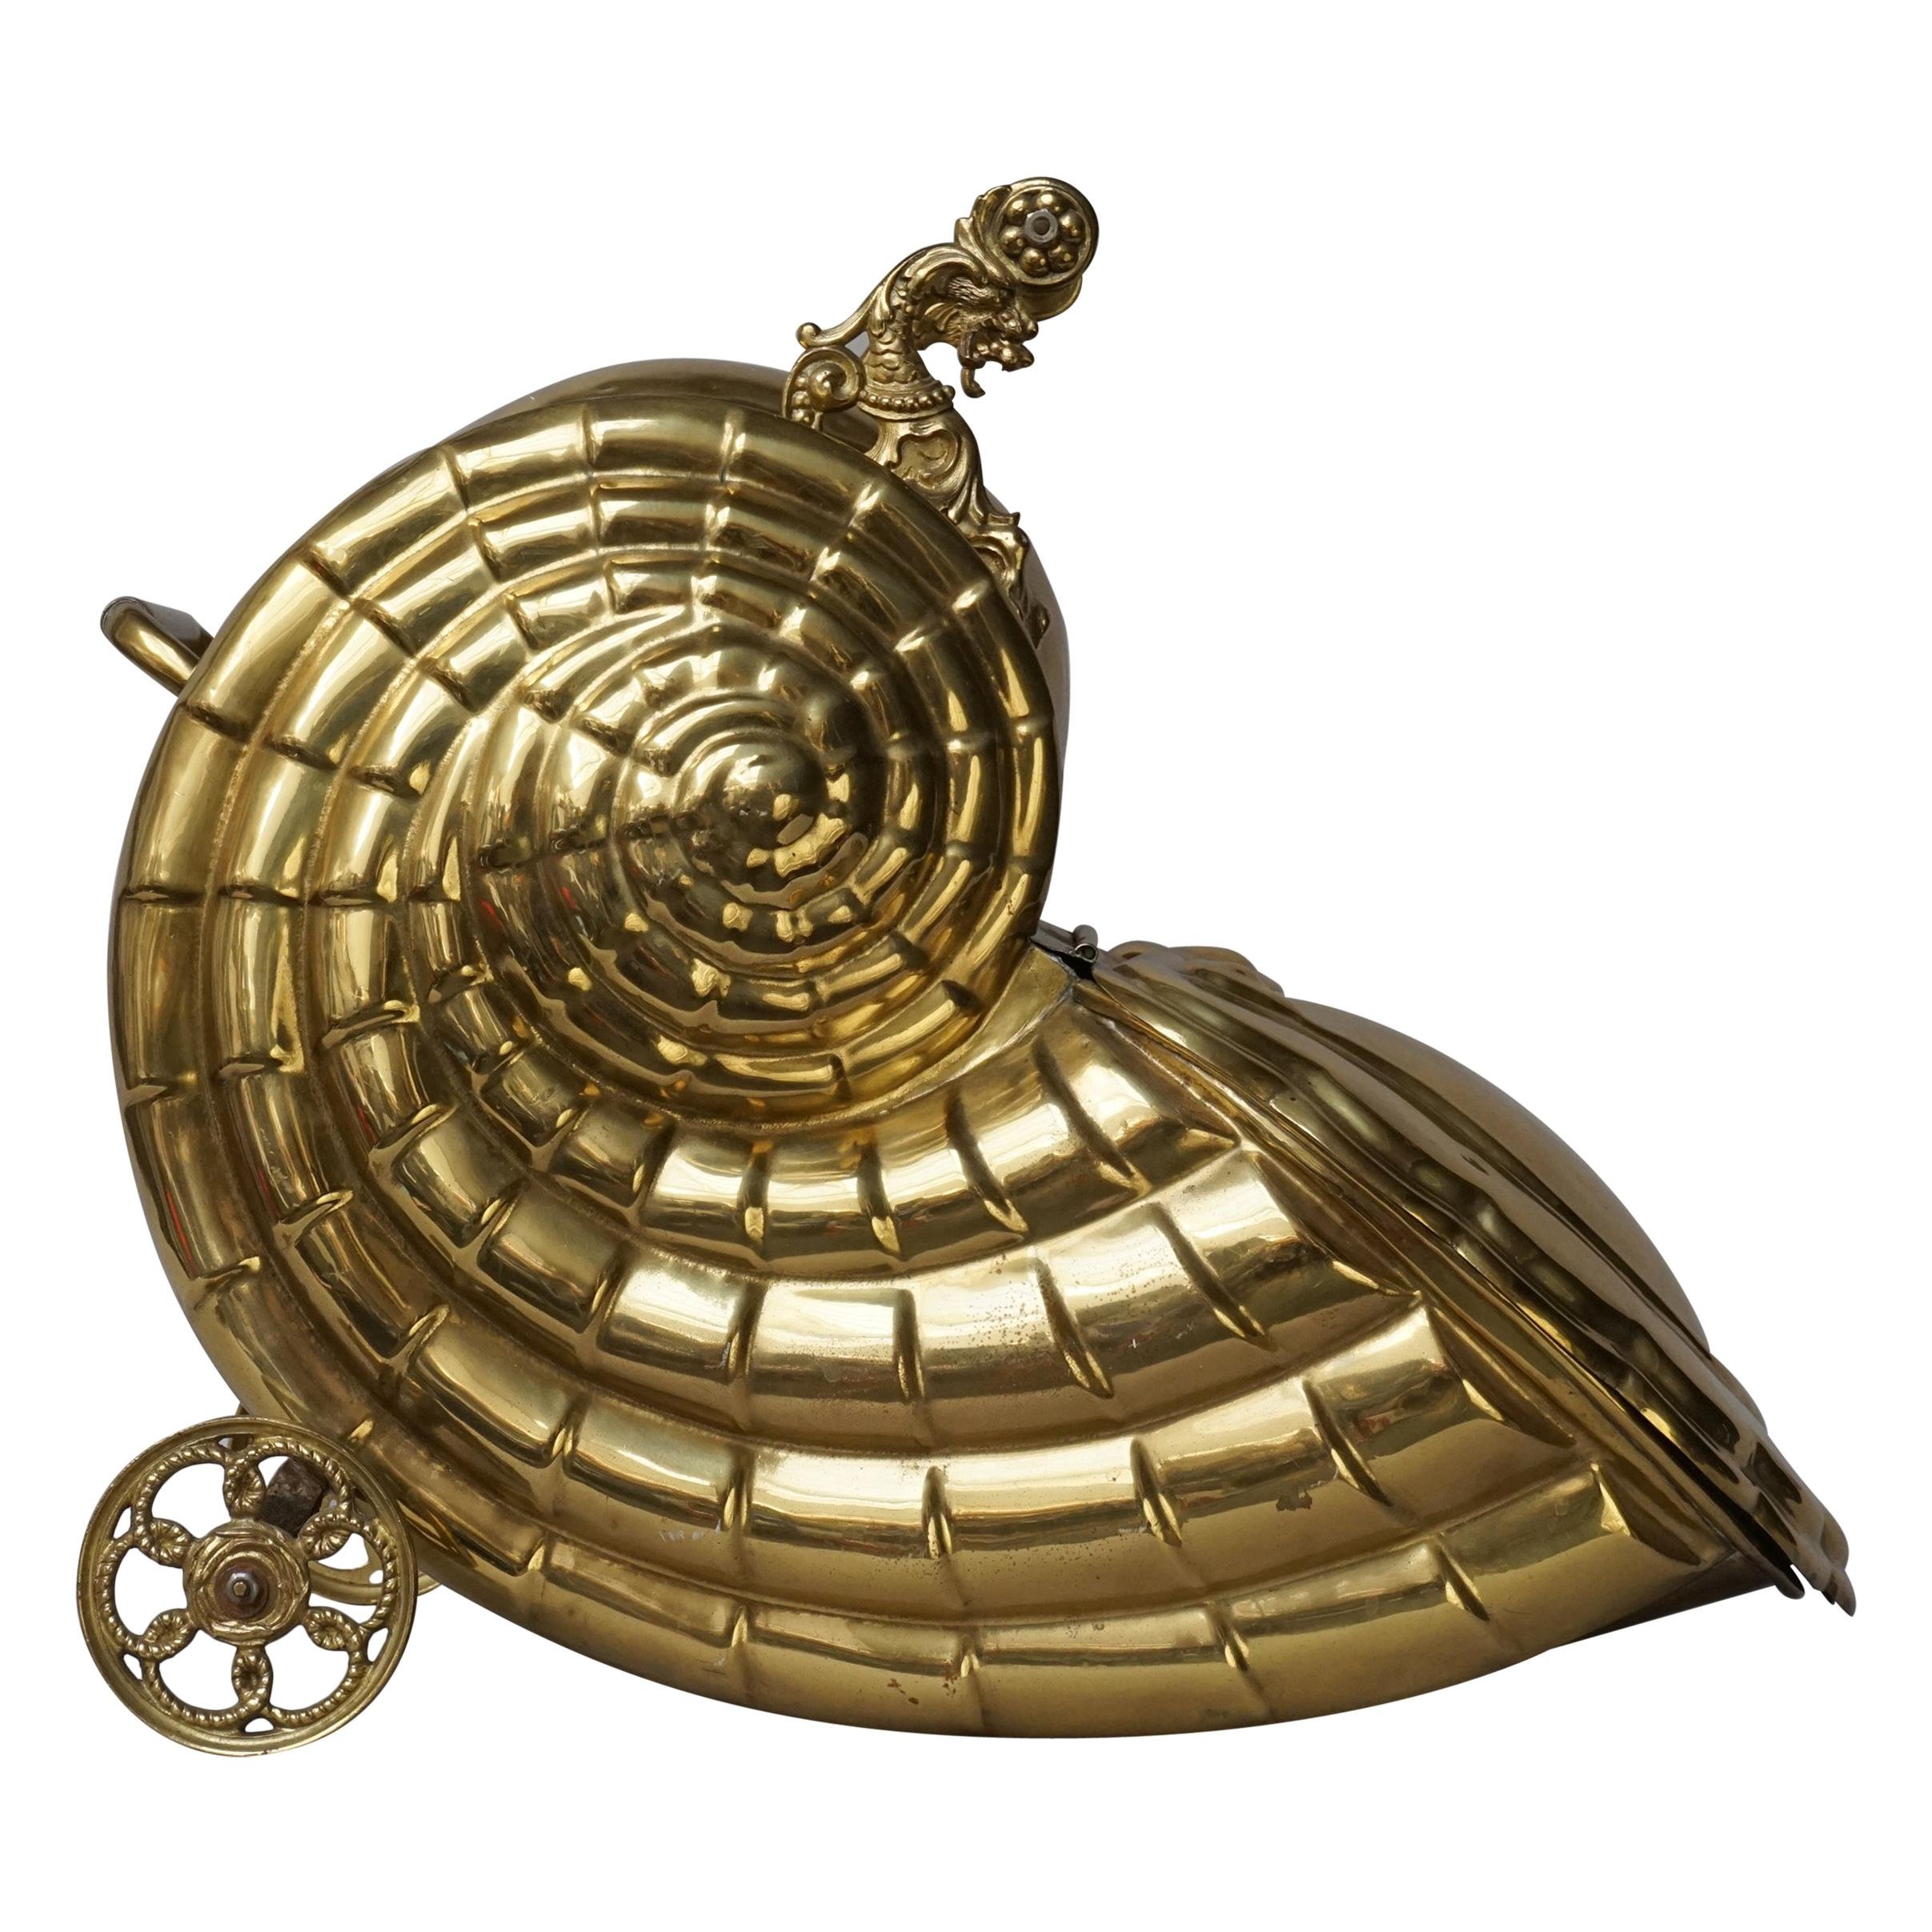 19th Century Victorian Brass Nautilus Shell Shaped Coal Scuttle or Purdonium